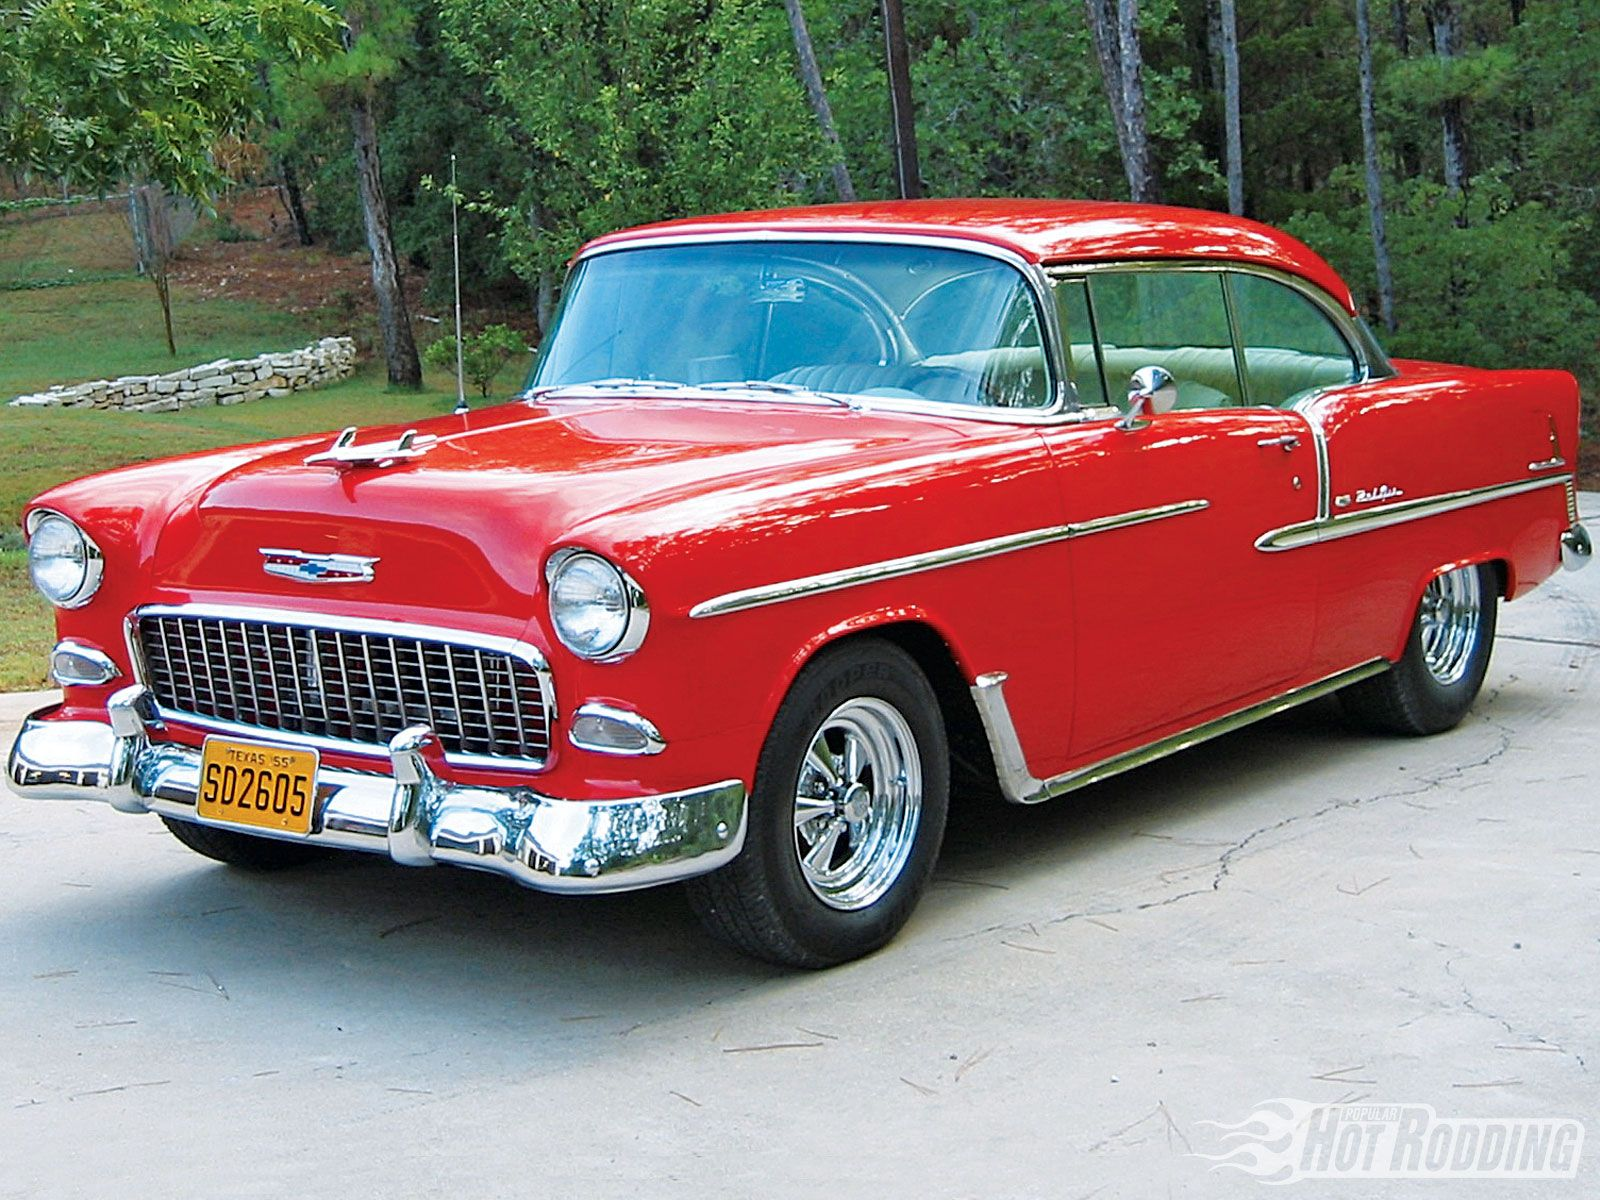 1955 chevy bel air coupe speed cars trucks wheels chevy cars 1955 chevy. Black Bedroom Furniture Sets. Home Design Ideas